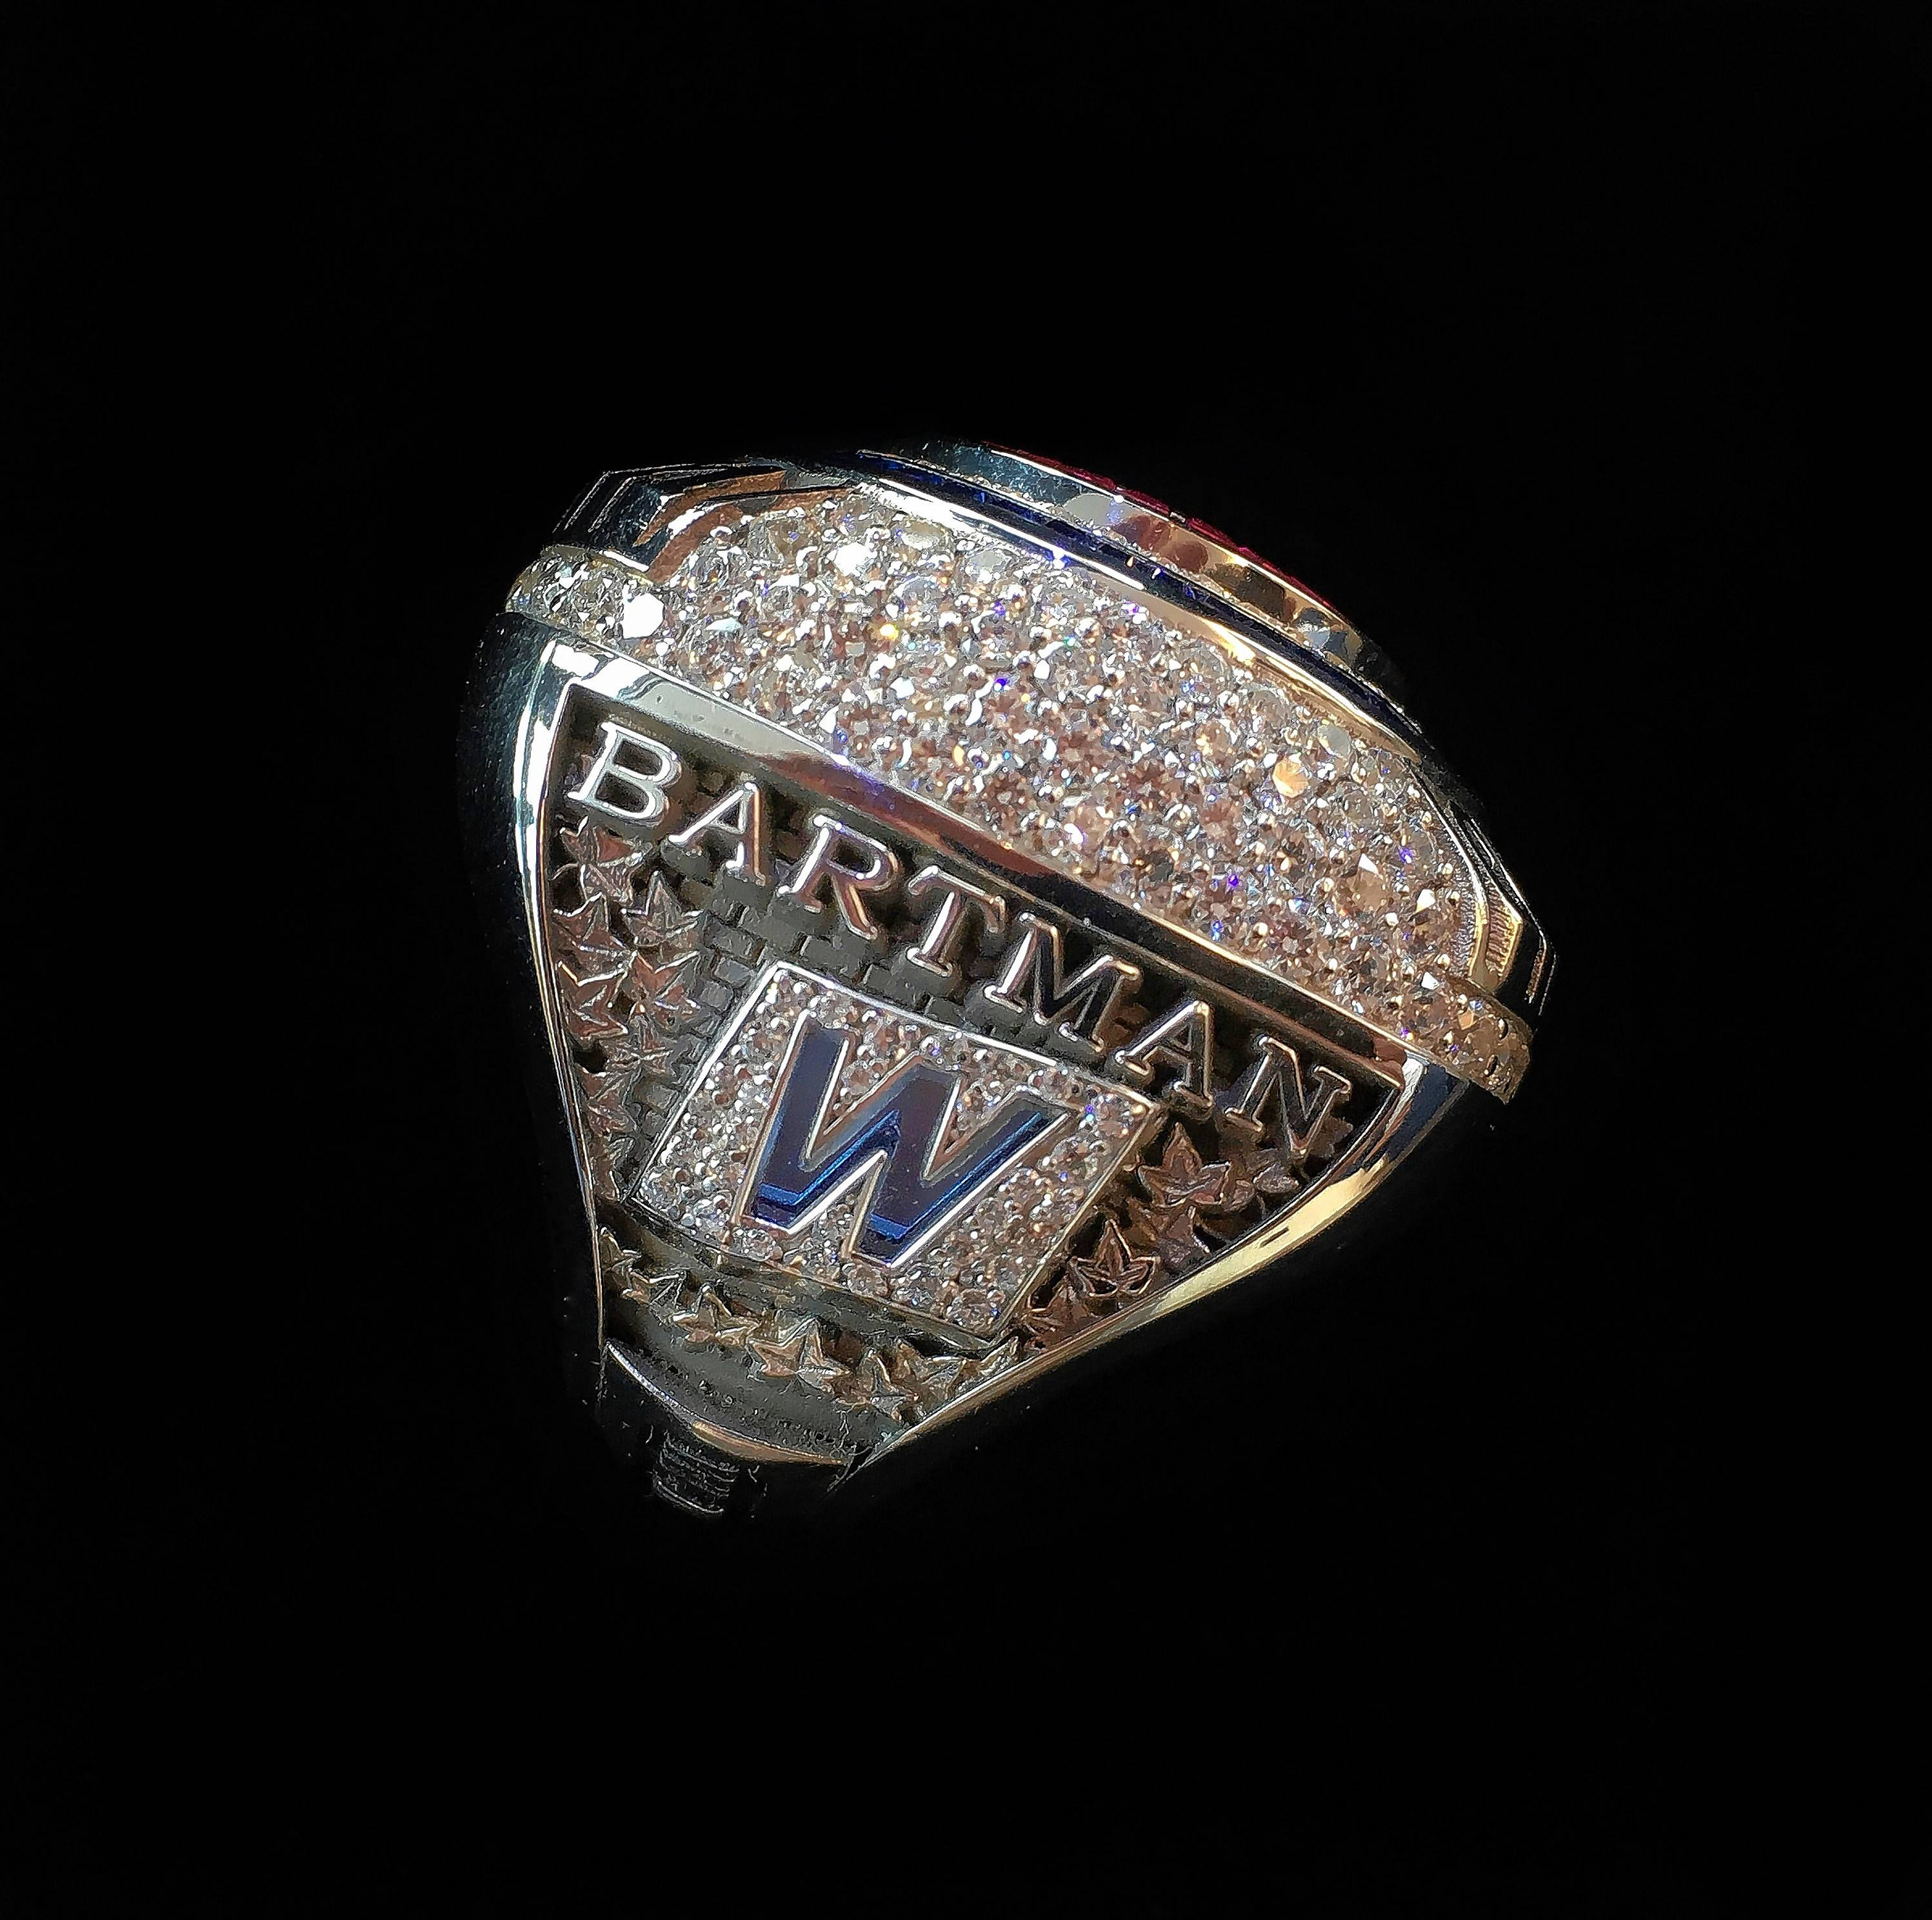 This 2016 World Series ring was presented to Cubs fan Steve Bartman.